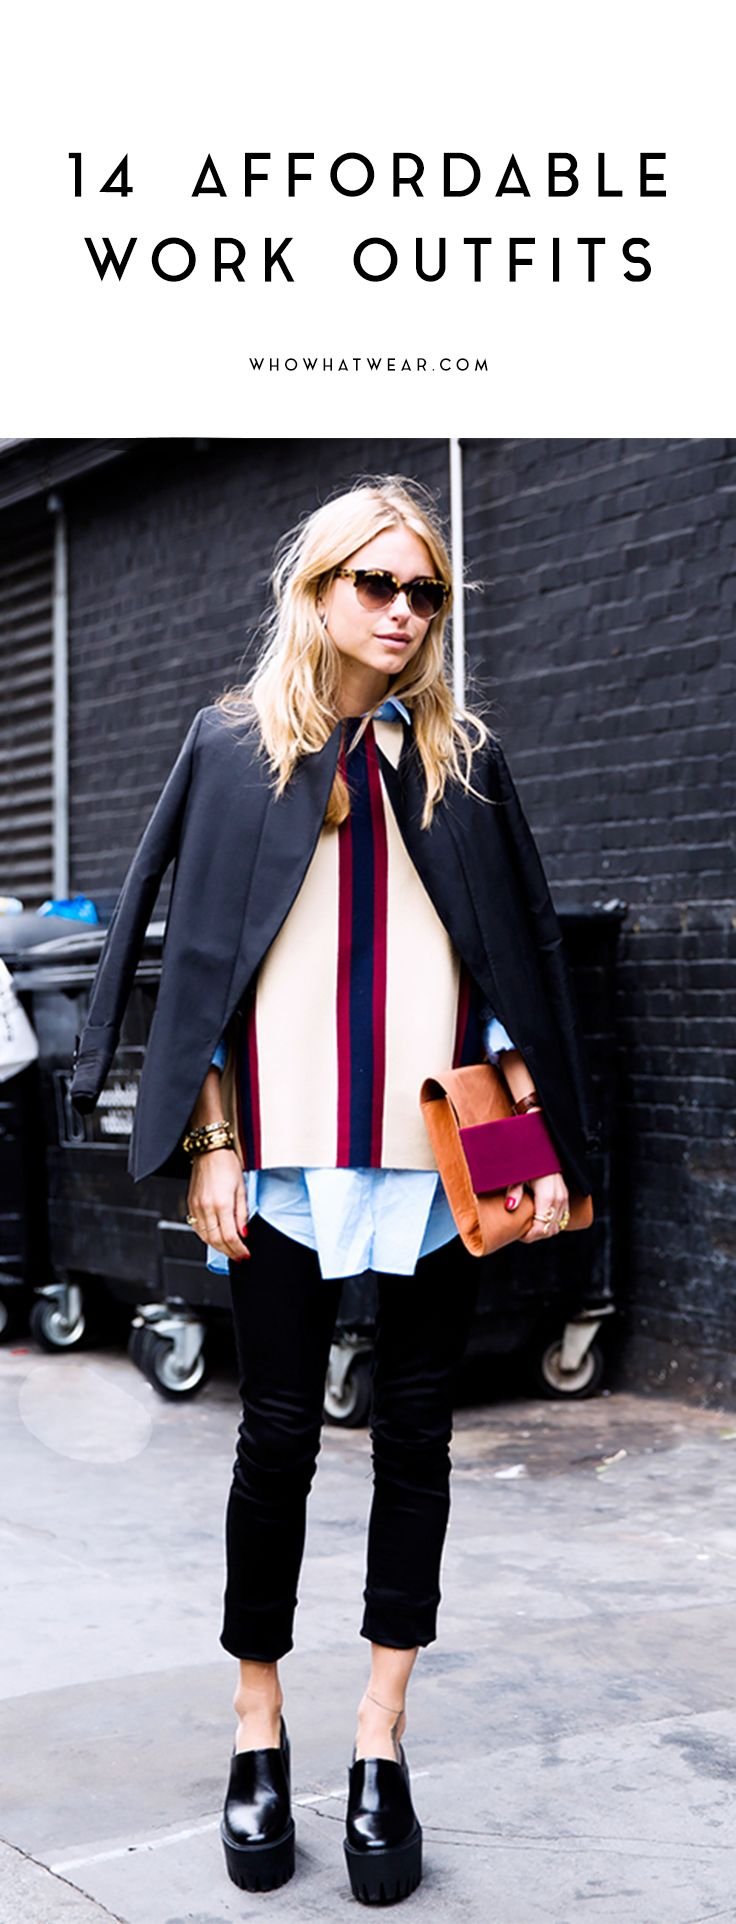 Chic outfits for the office